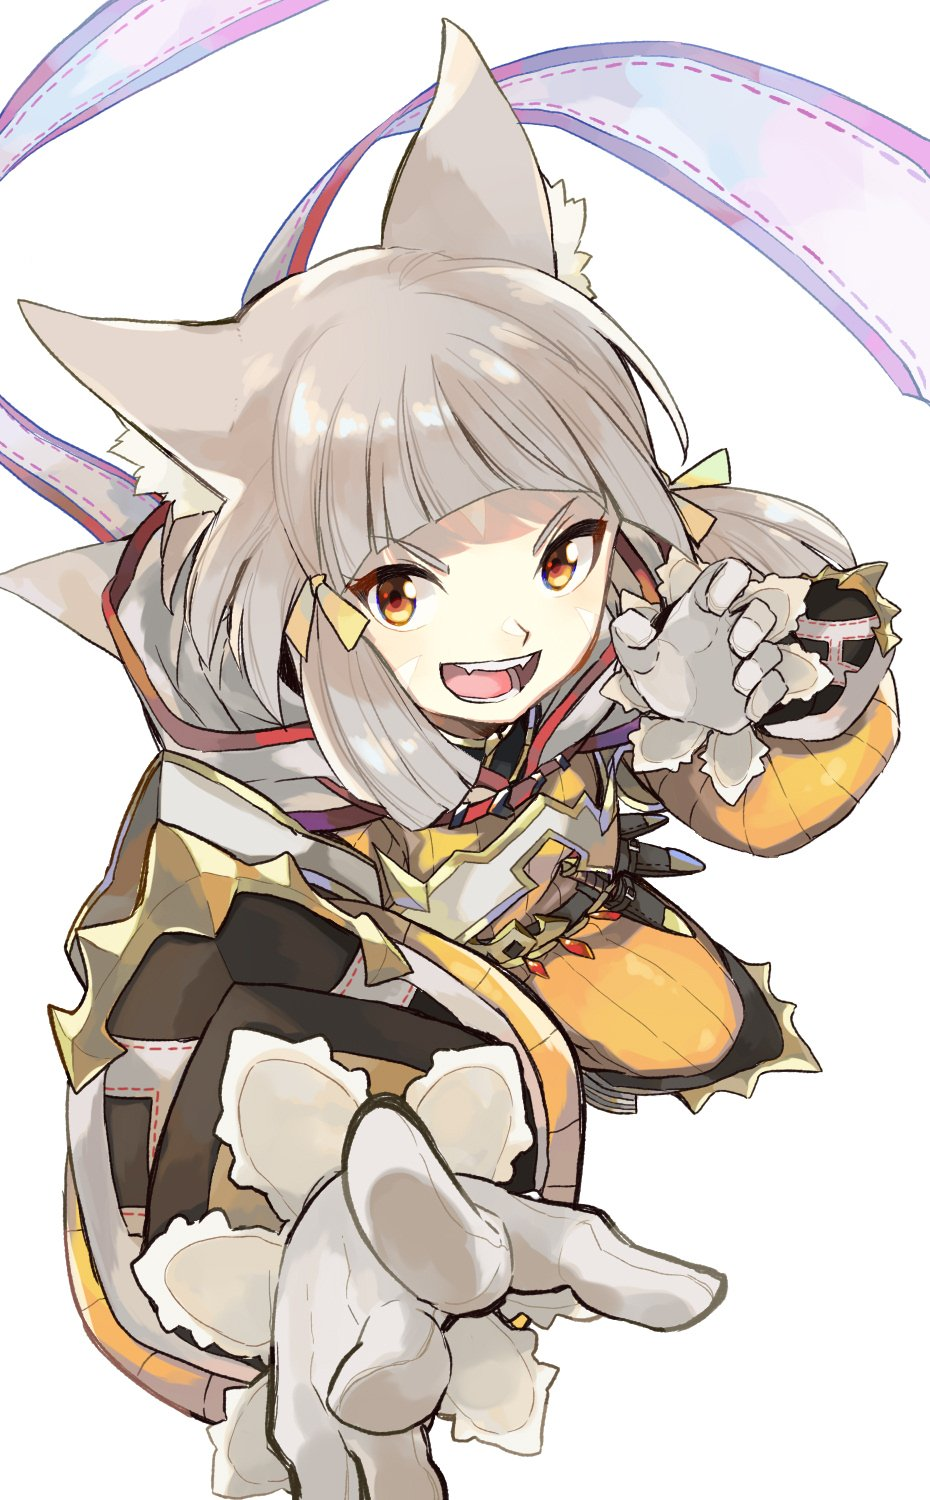 1girl animal_ears bangs blunt_bangs bodysuit cat_ears eyebrows gloves highres hood kinagi_(3307377) looking_at_viewer niyah ribbon short_hair silver_hair simple_background smile solo xenoblade xenoblade_2 yellow_bodysuit yellow_eyes